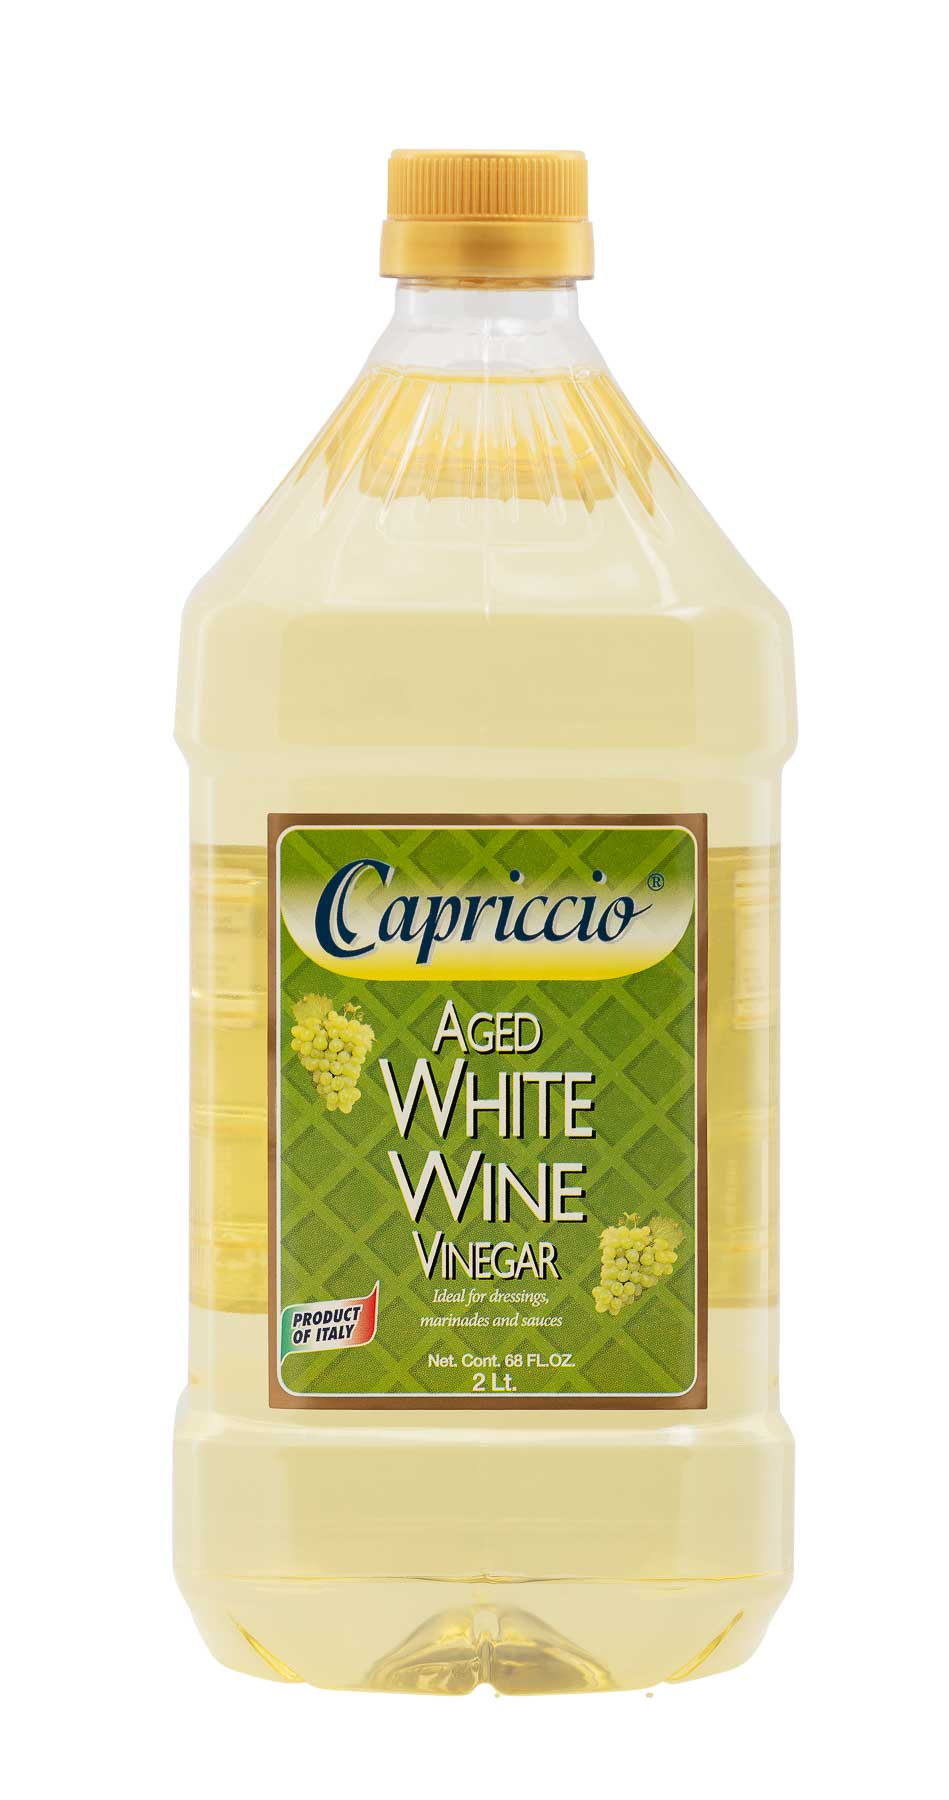 Aged White Whine Vinegar 2lt - Product photo